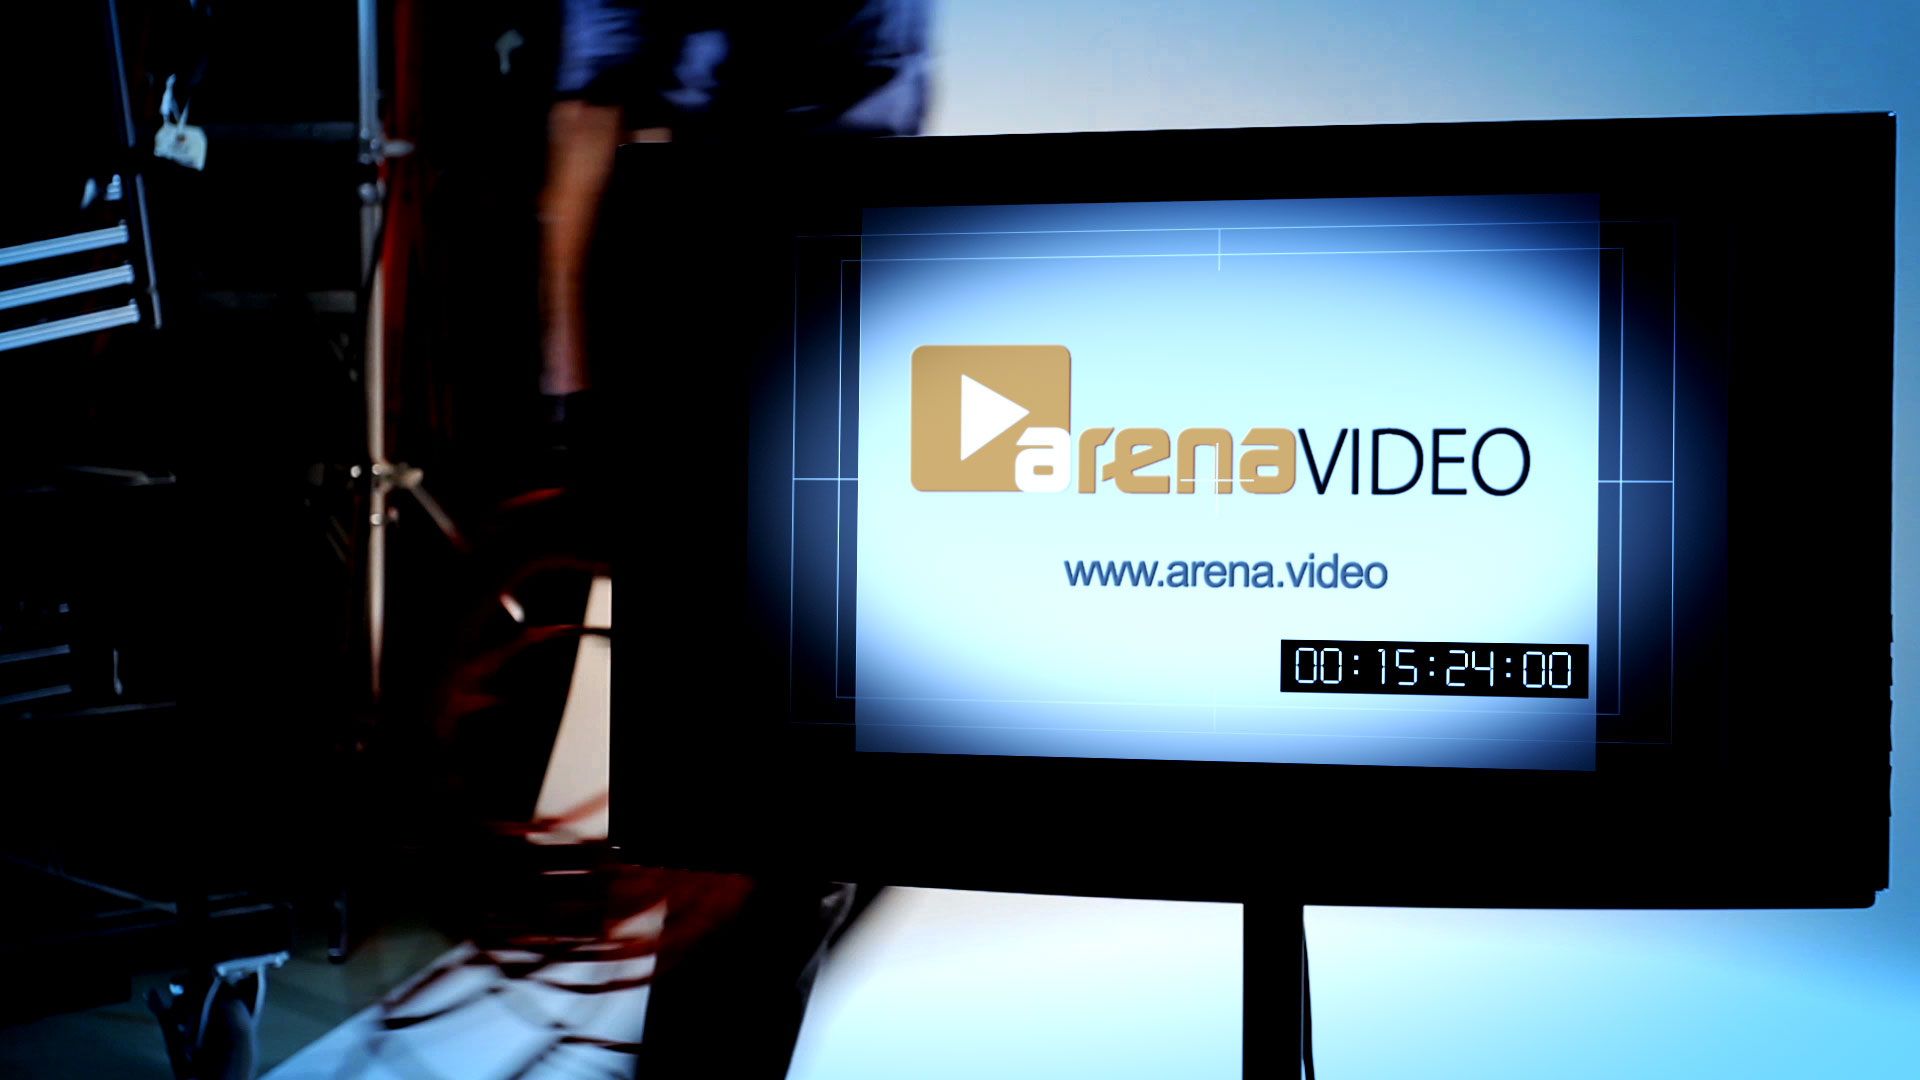 Arena video